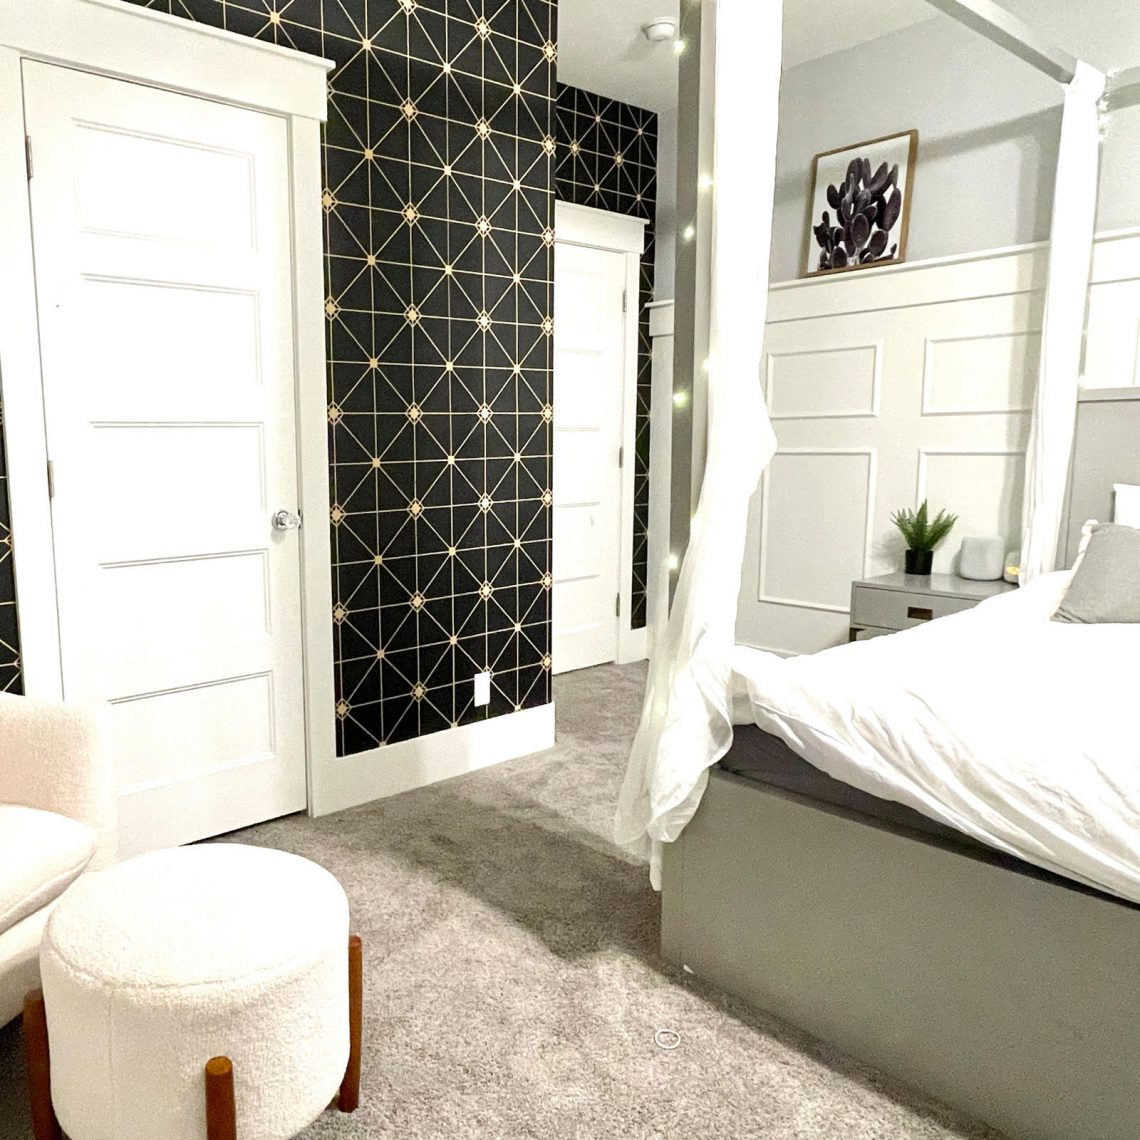 See Why Wallpaper Isn't Just For the Ladies